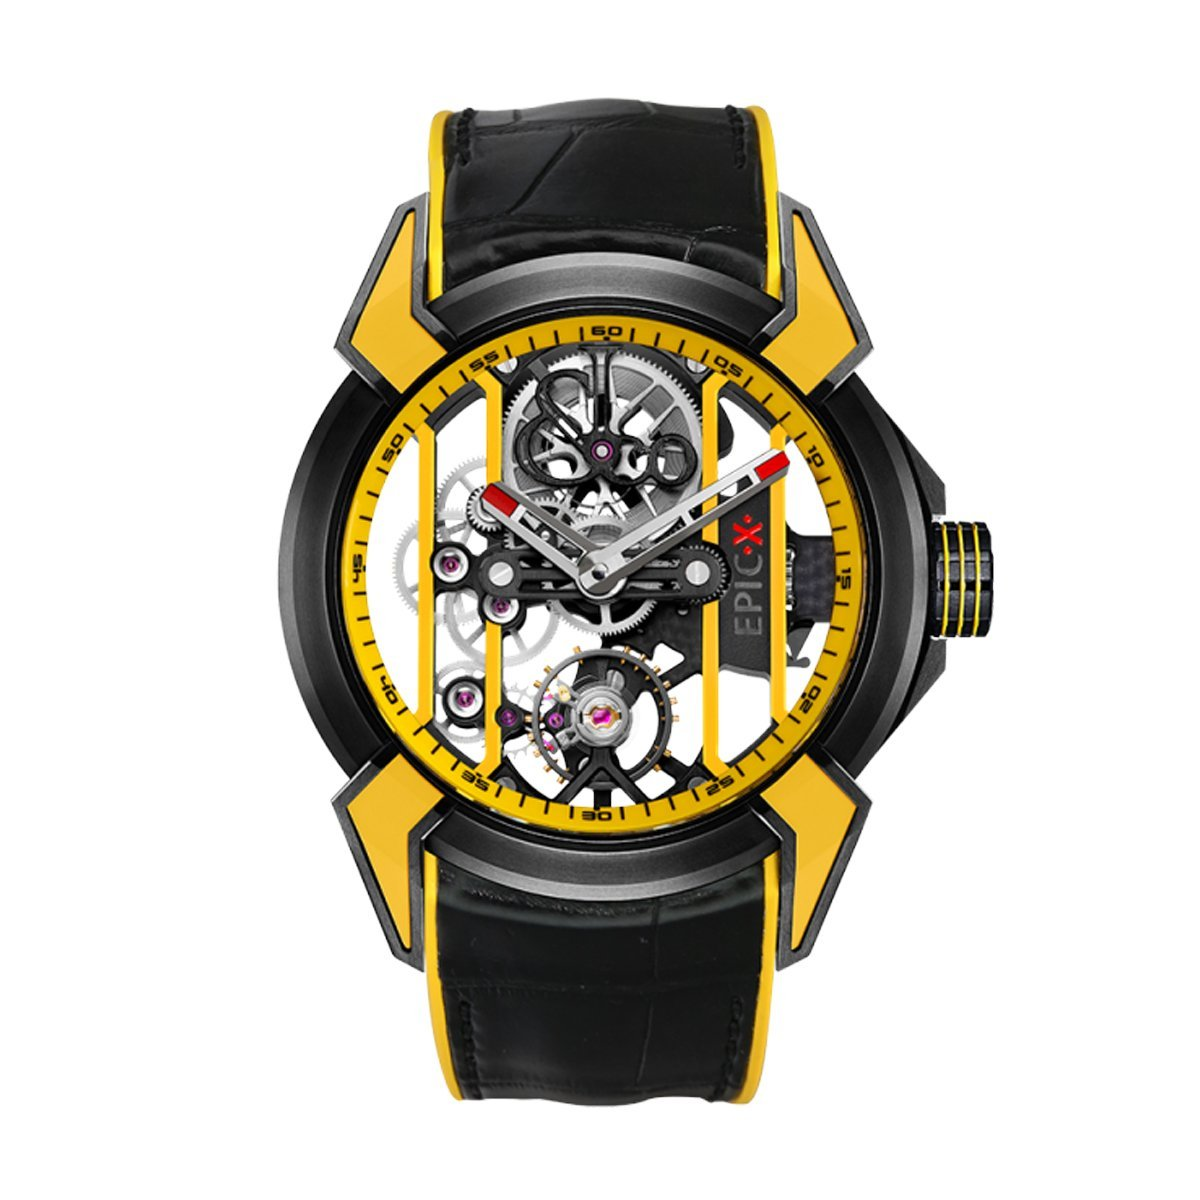 Jacob & Co. Epic X Racing Black DLC Yellow - Watches & Crystals